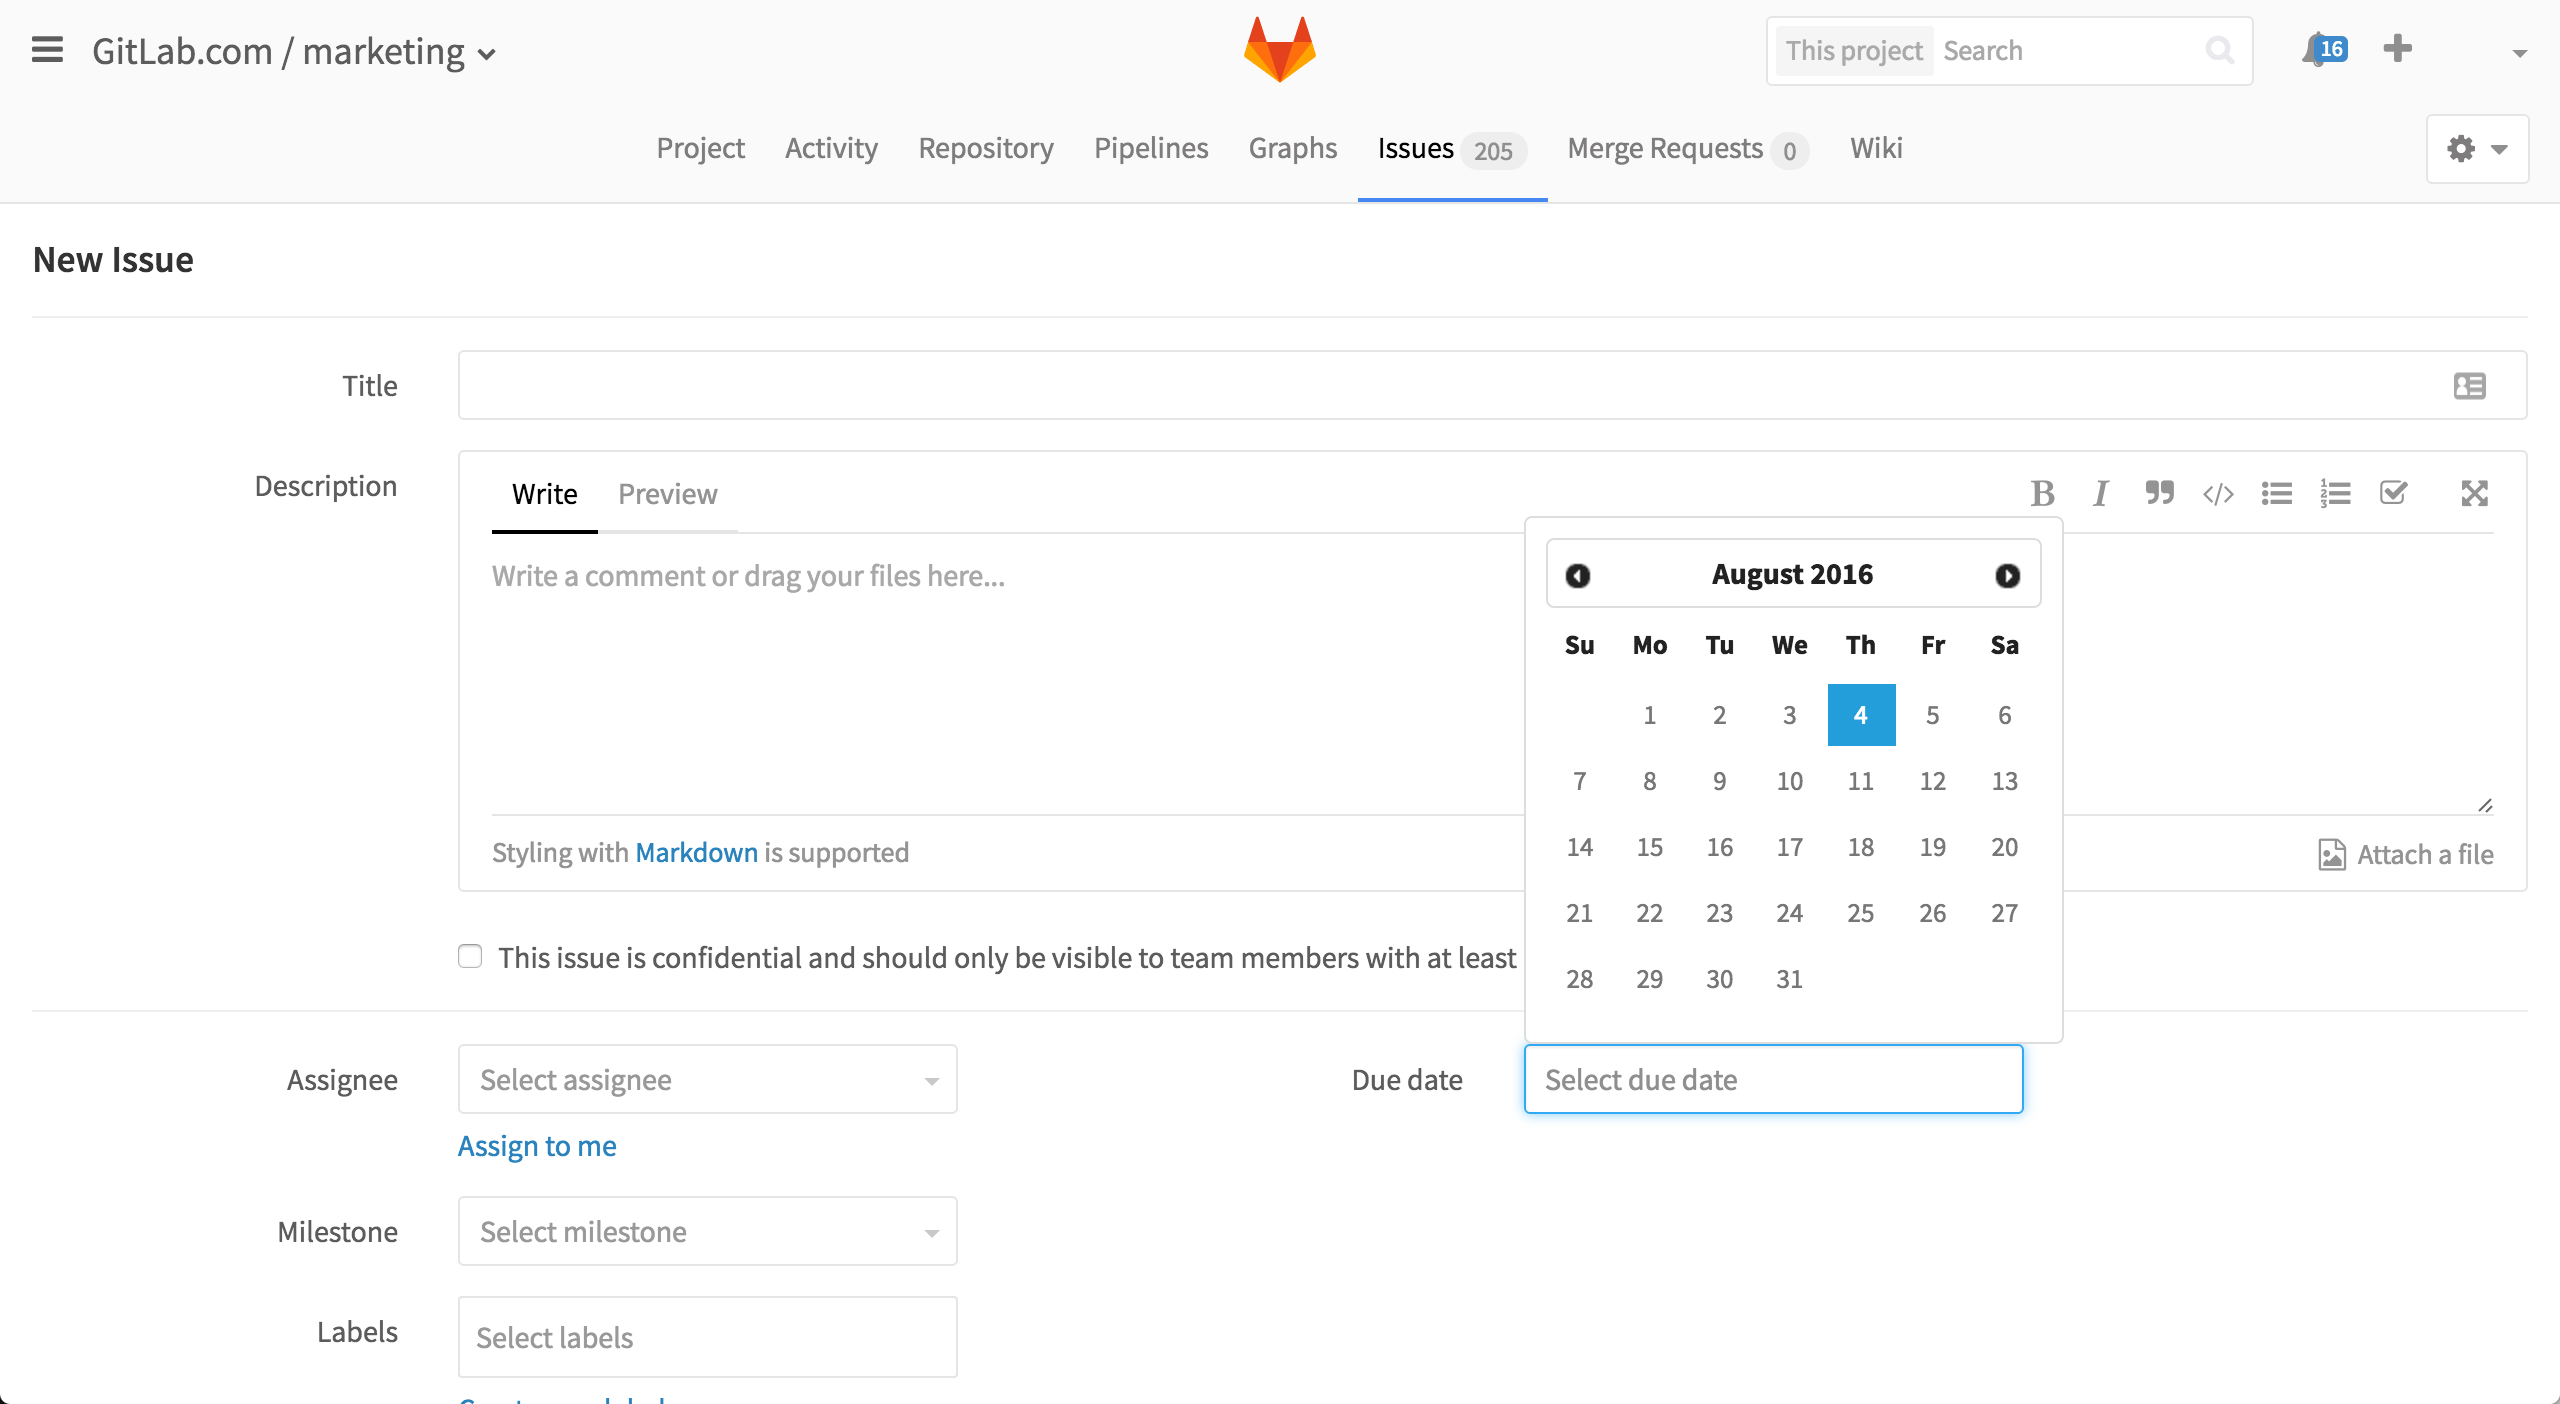 Due date for issues in GitLab 8.7